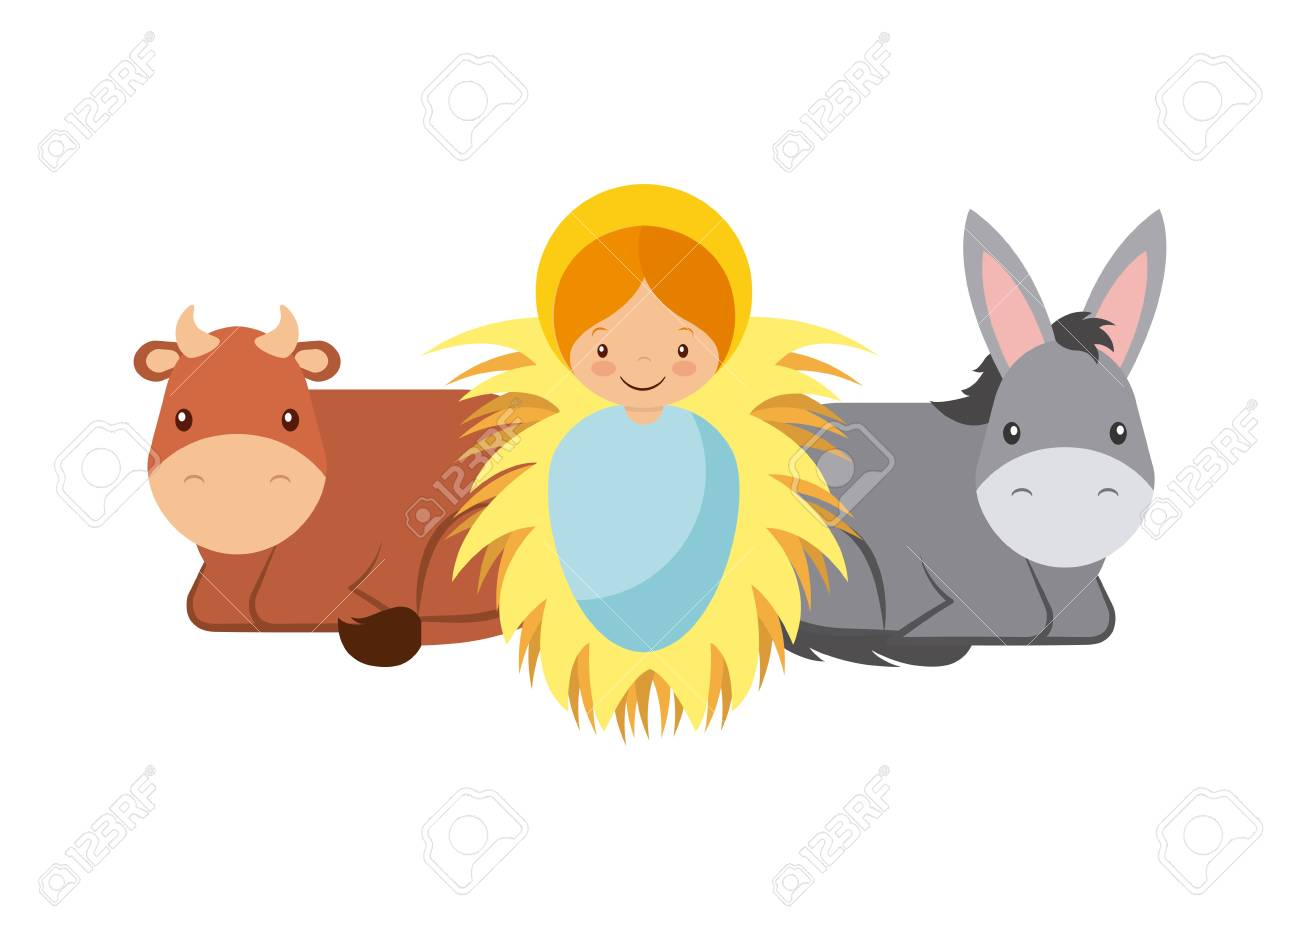 Cute cartoon baby jesus with donkey and cow animals over white cute cartoon baby jesus with donkey and cow animals over white background colorful design voltagebd Images